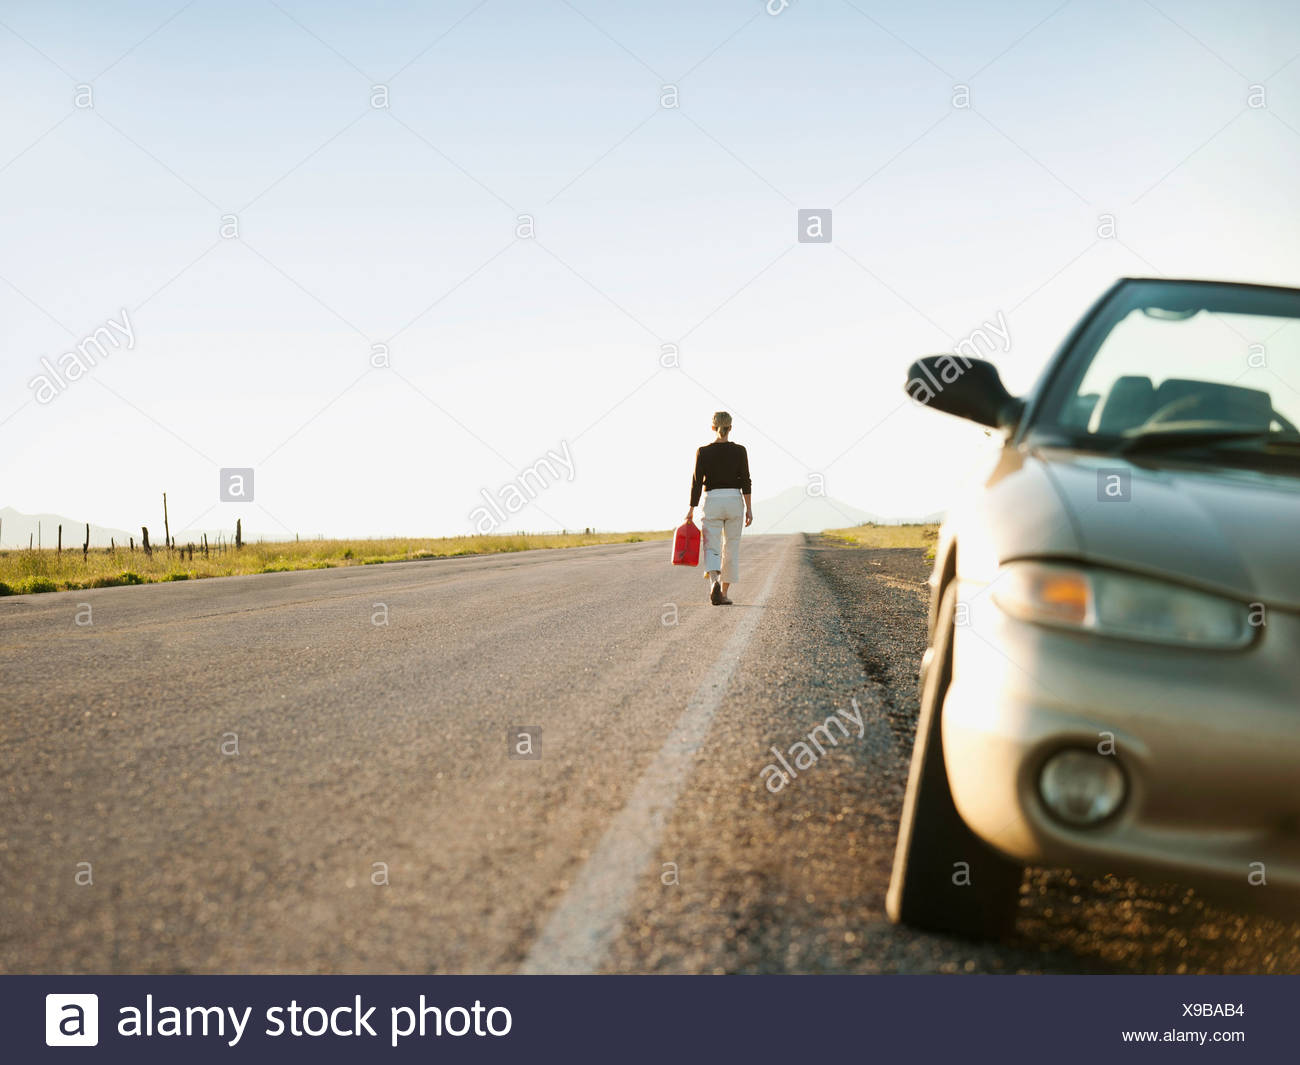 USA, Utah, Kanosh, Woman carrying canister walking along empty road, her car parked on roadside - Stock Image